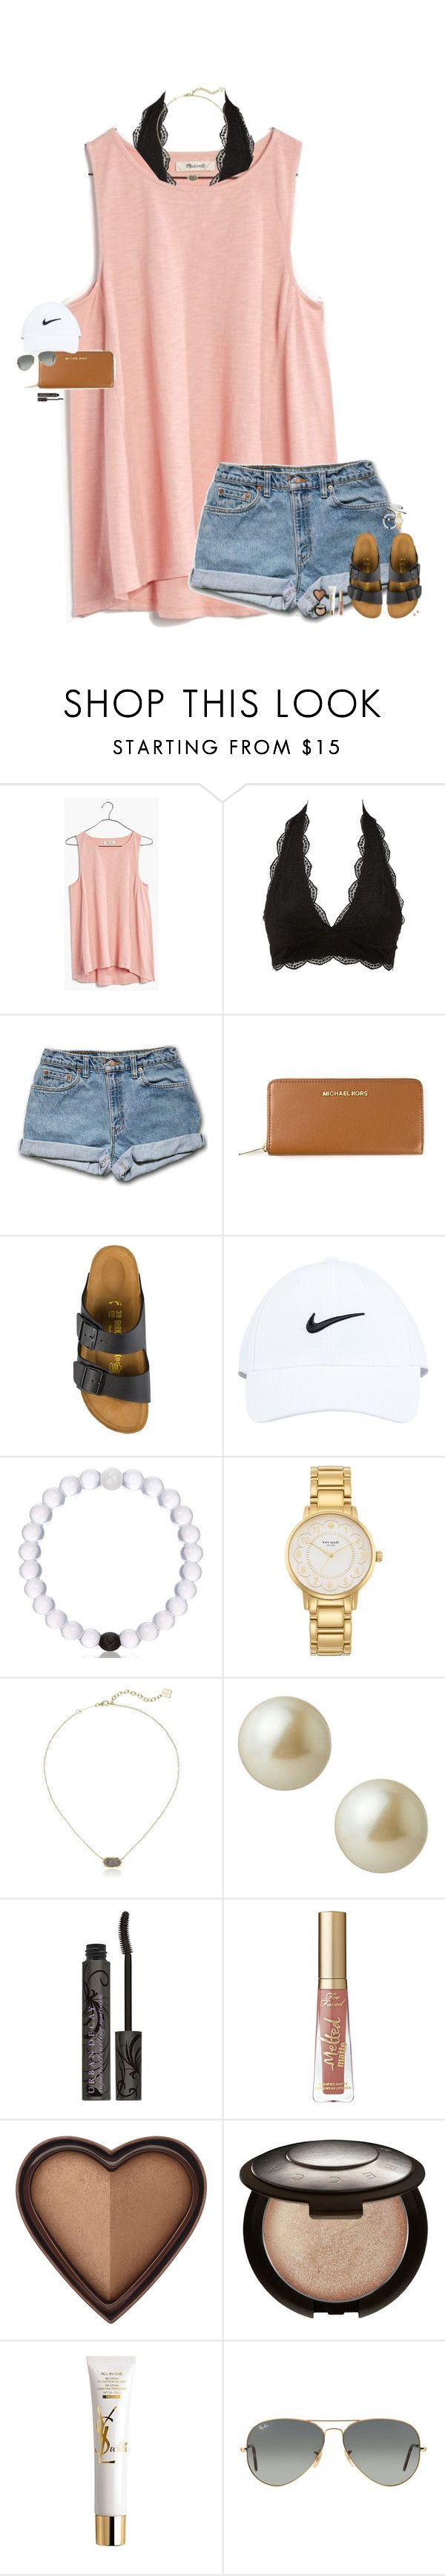 """""""•"""" by maggie-prep ❤ liked on Polyvore featuring Madewell, Charlotte Russe, MICHAEL Michael Kors, Birkenstock, NIKE, Kate Spade, Kendra Scott, Carolee, Urban Decay and Too Faced Cosmetics"""